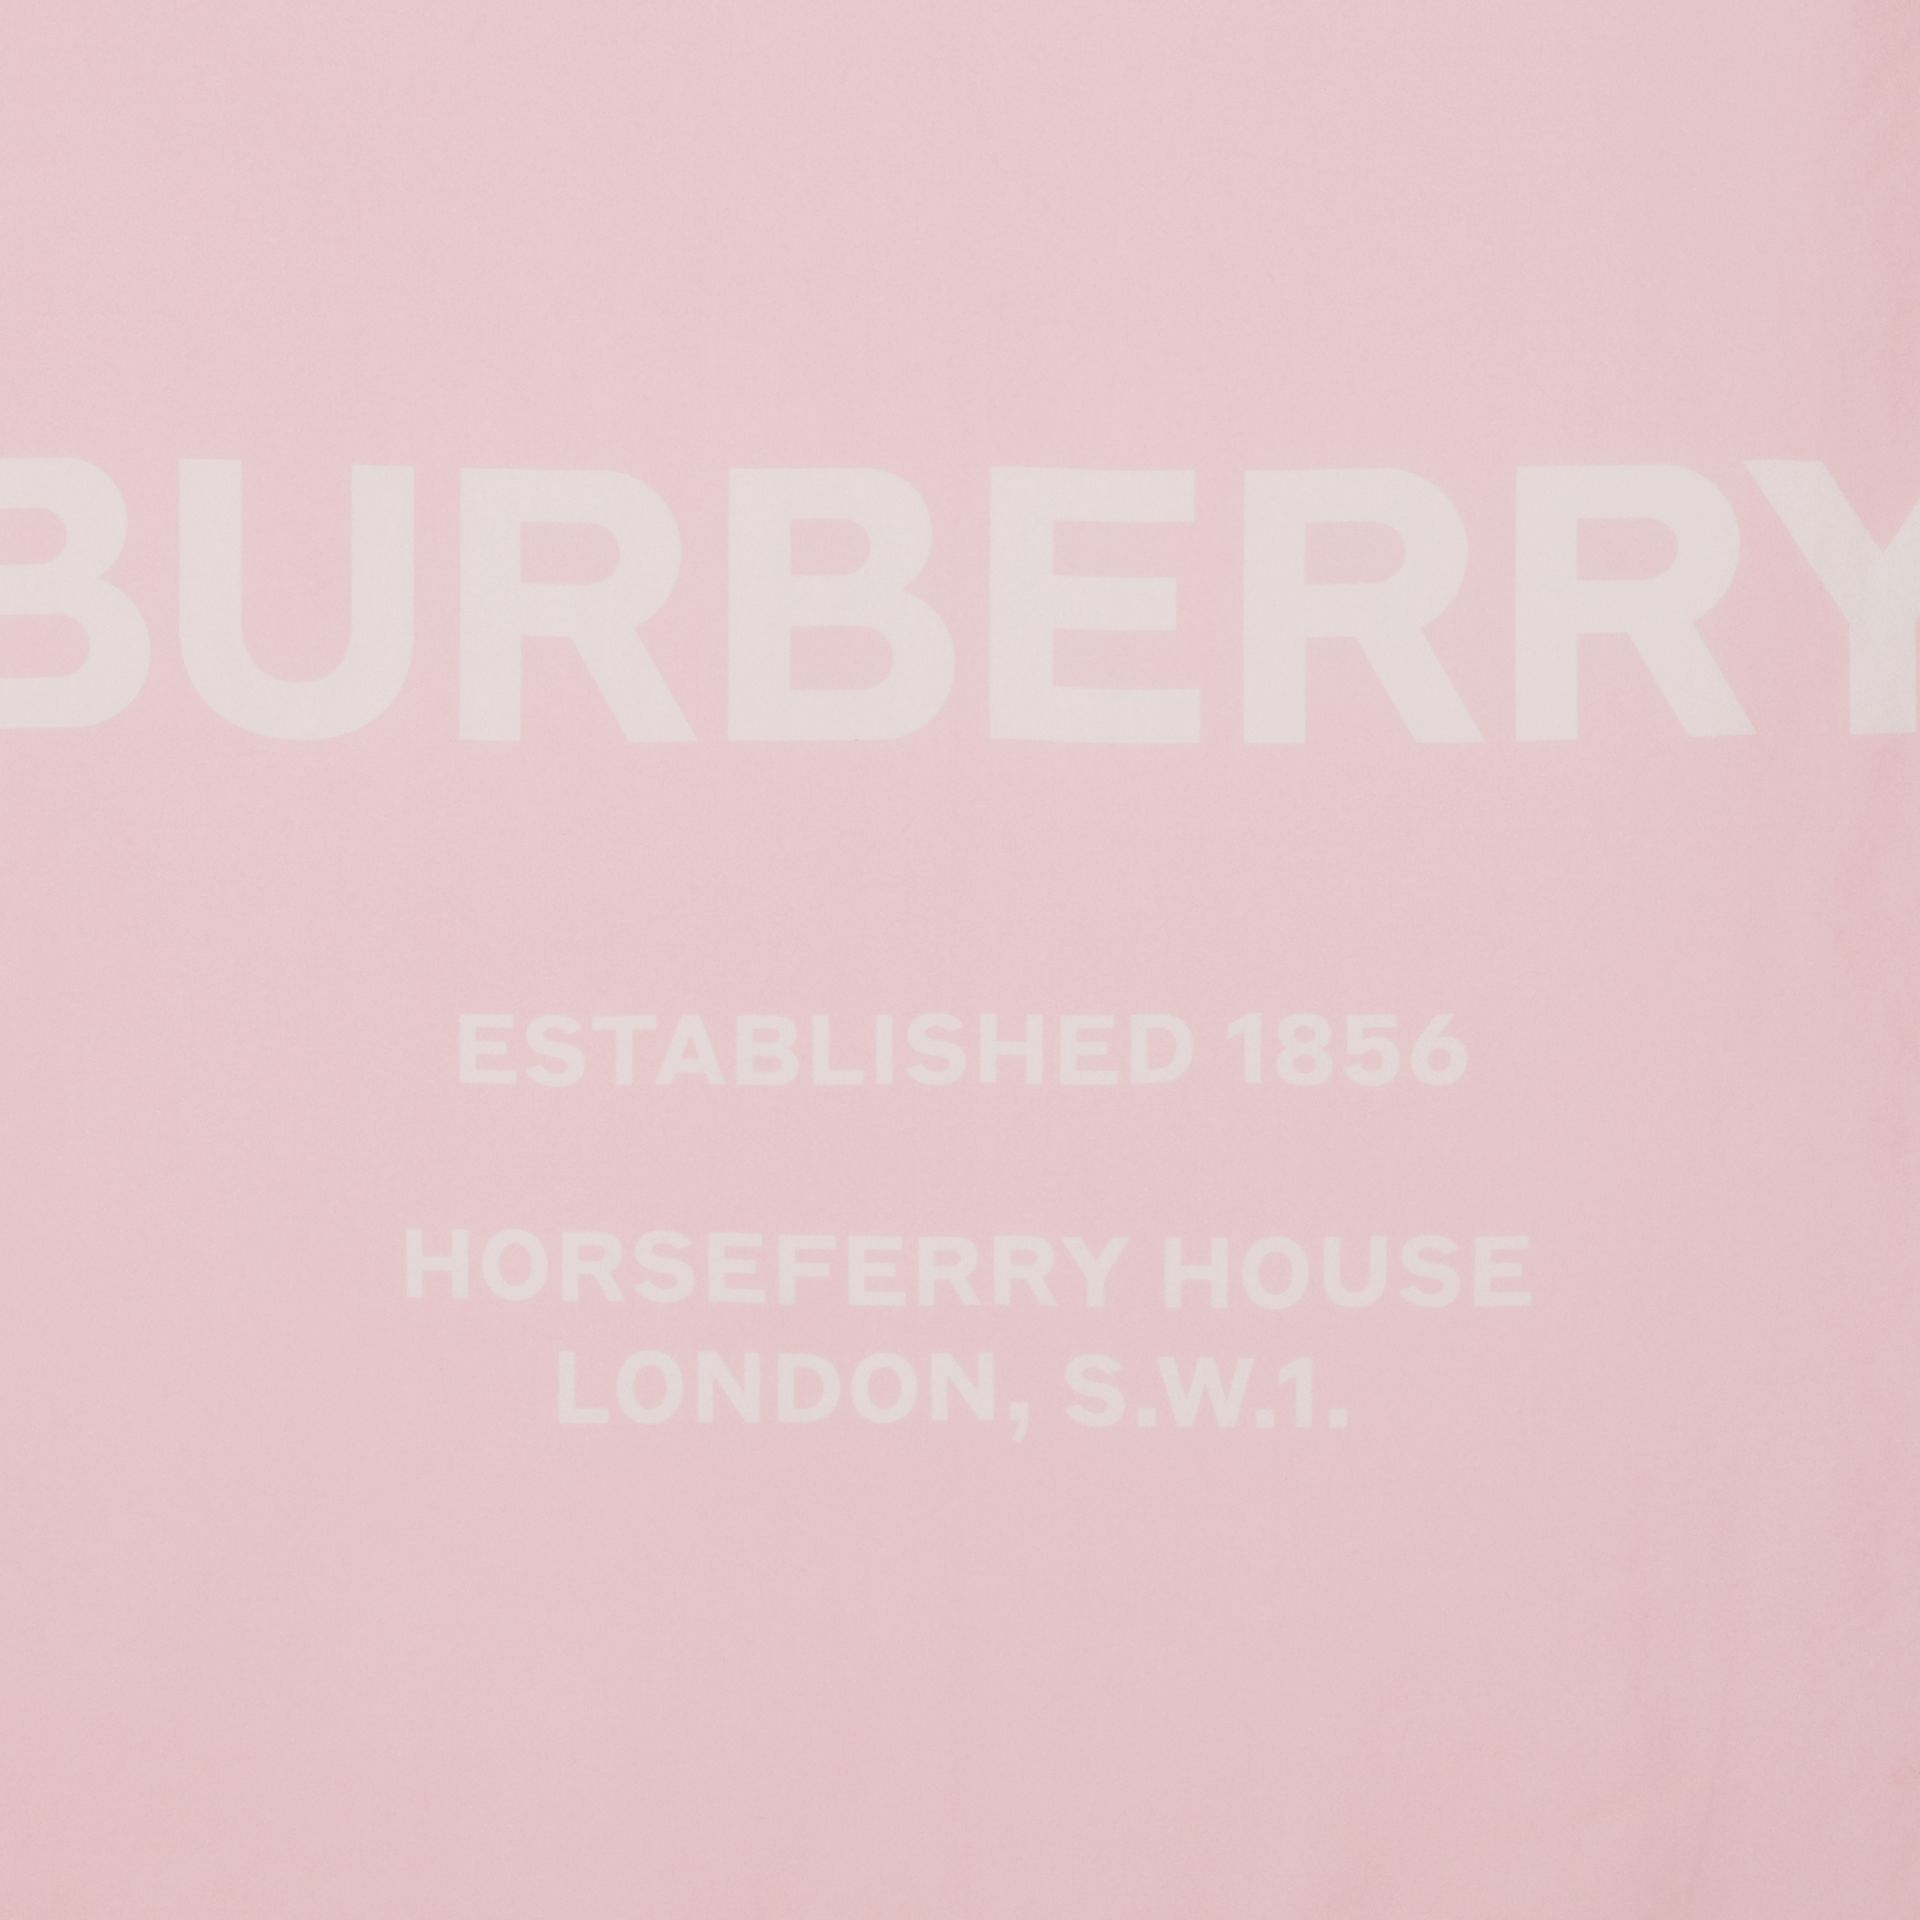 Horseferry Print Silk Square Scarf in Pink | Burberry - gallery image 1